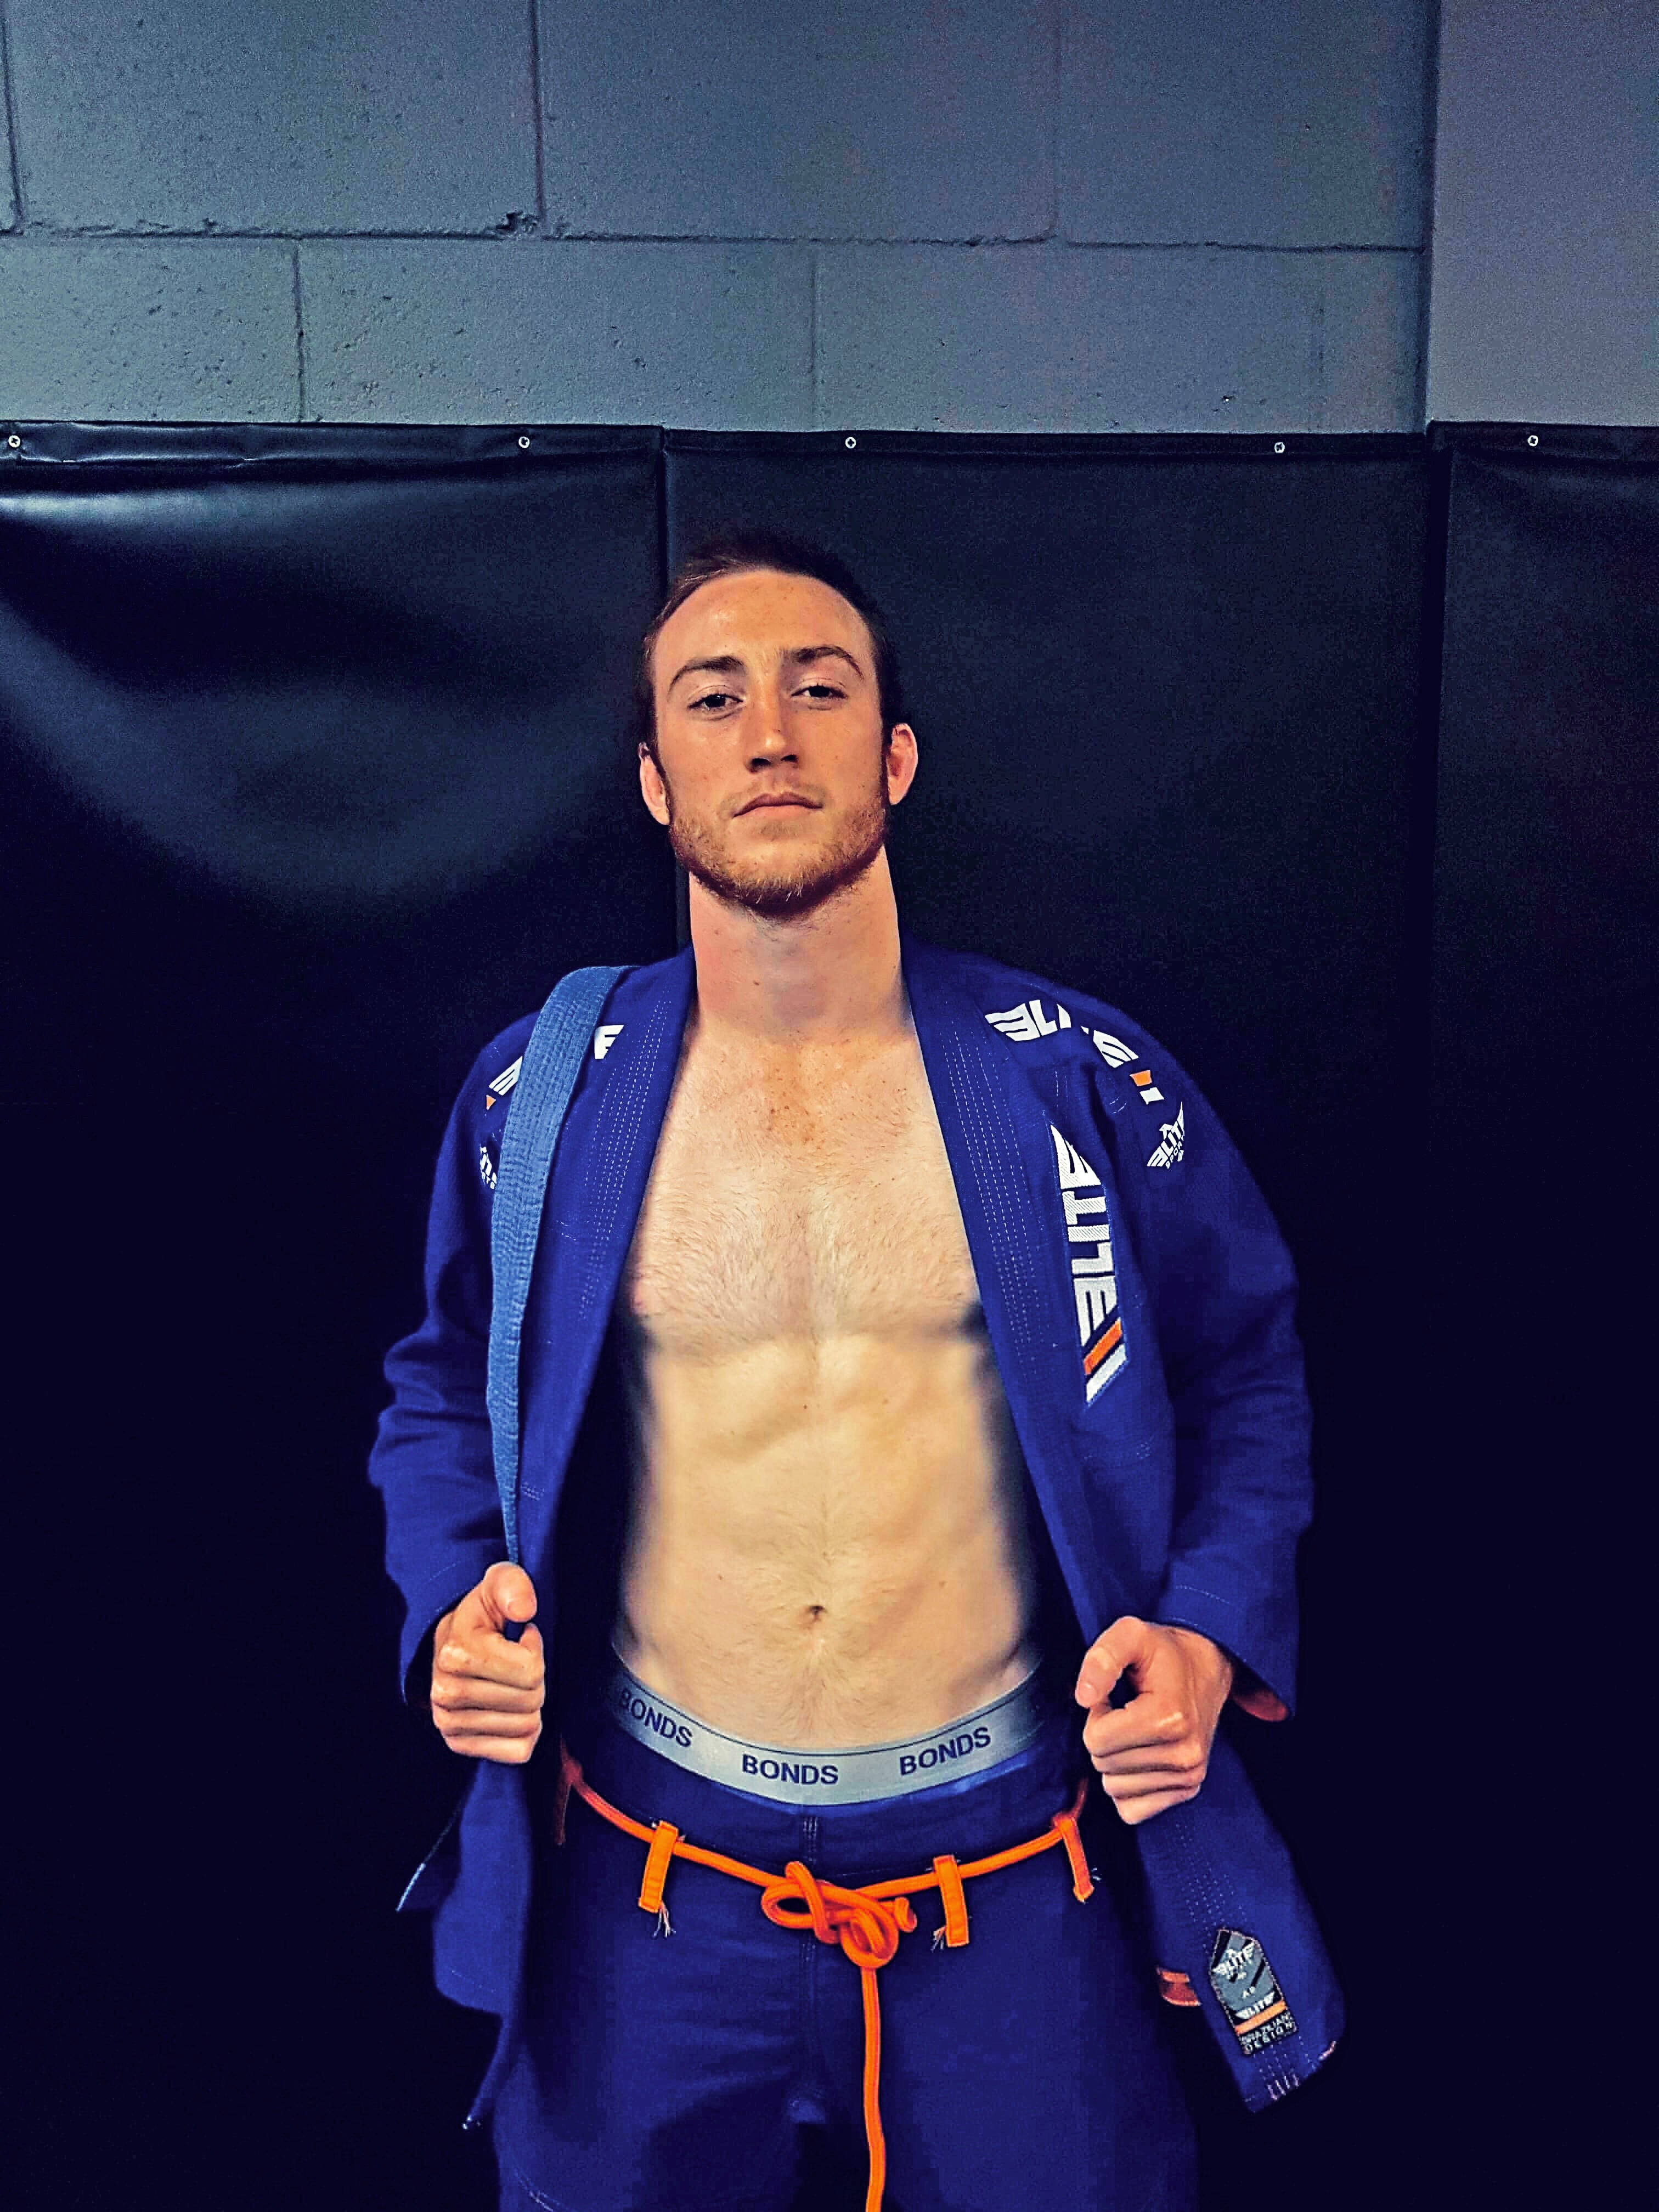 Elite Sports Team Elite Bjj Fighter Ashton Riddle-Johnston  Image9